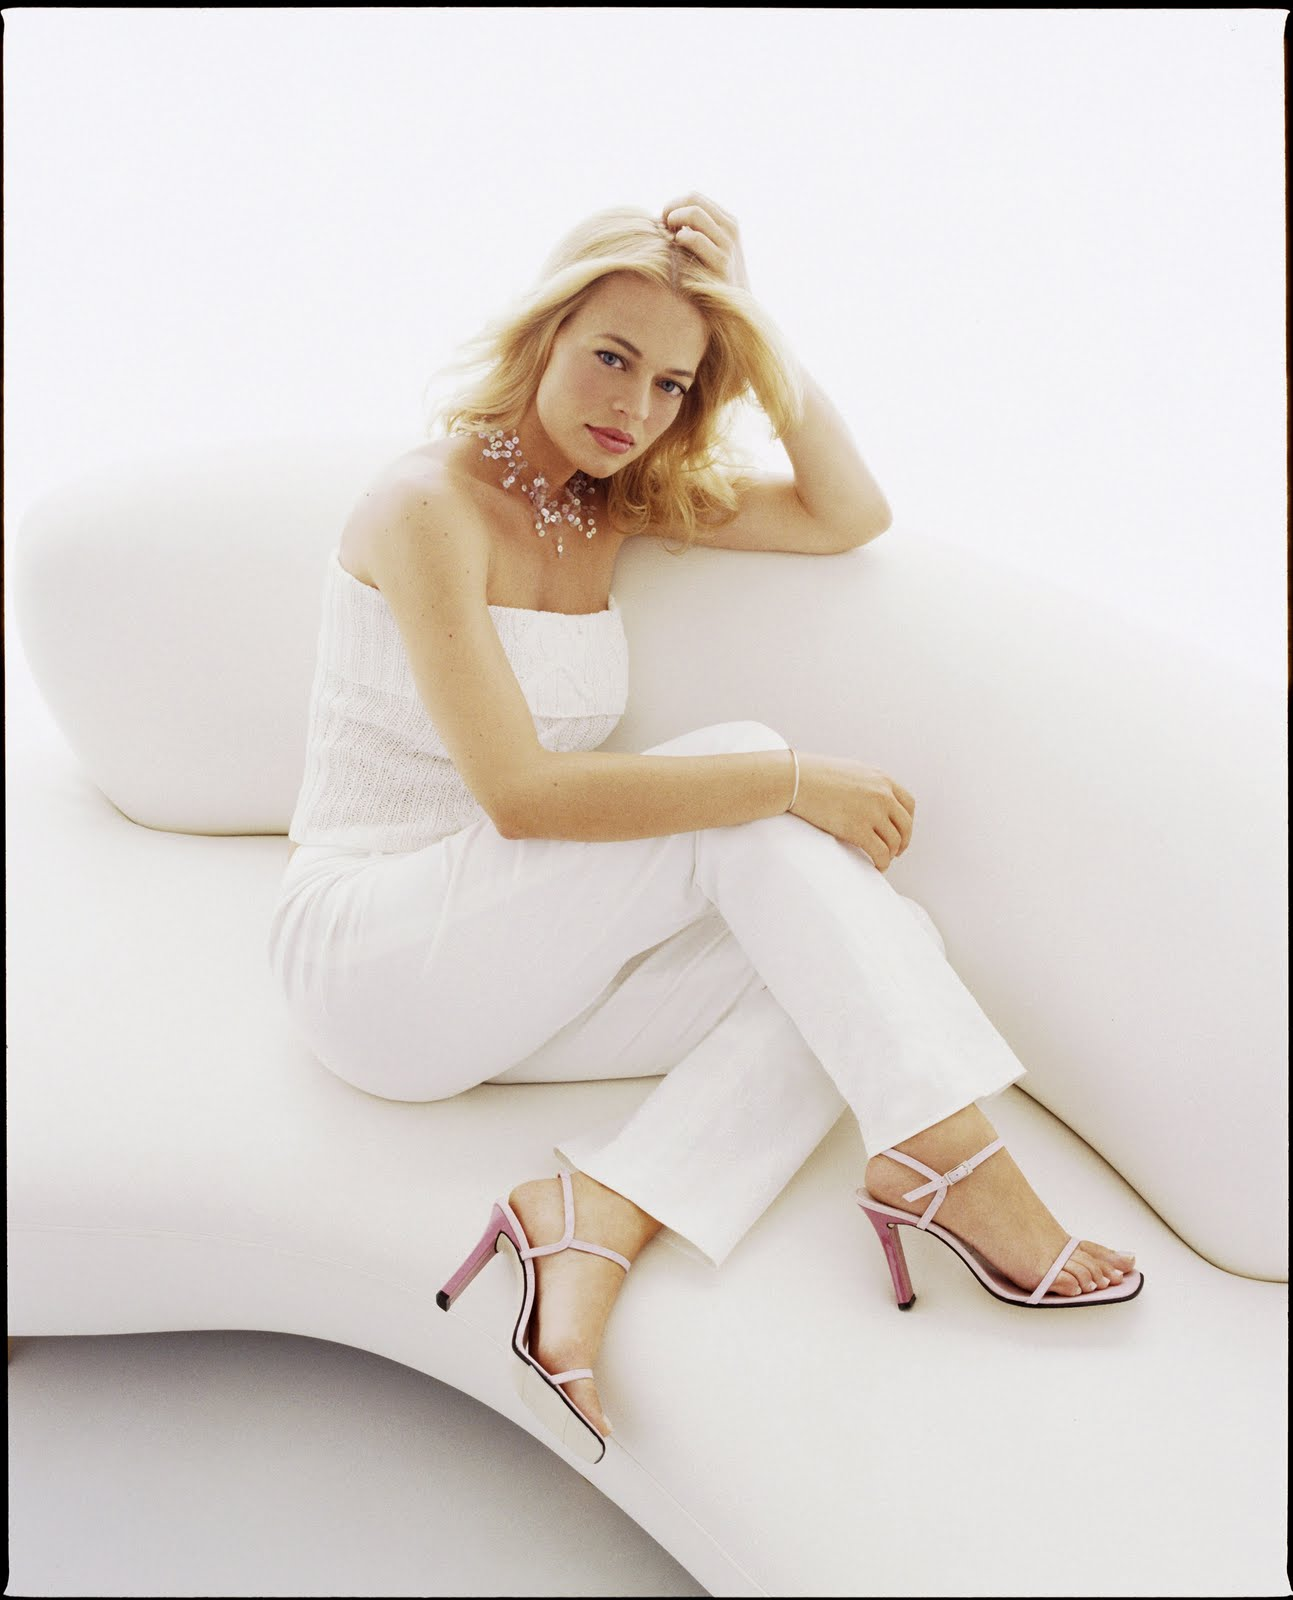 hot Jeri ryan